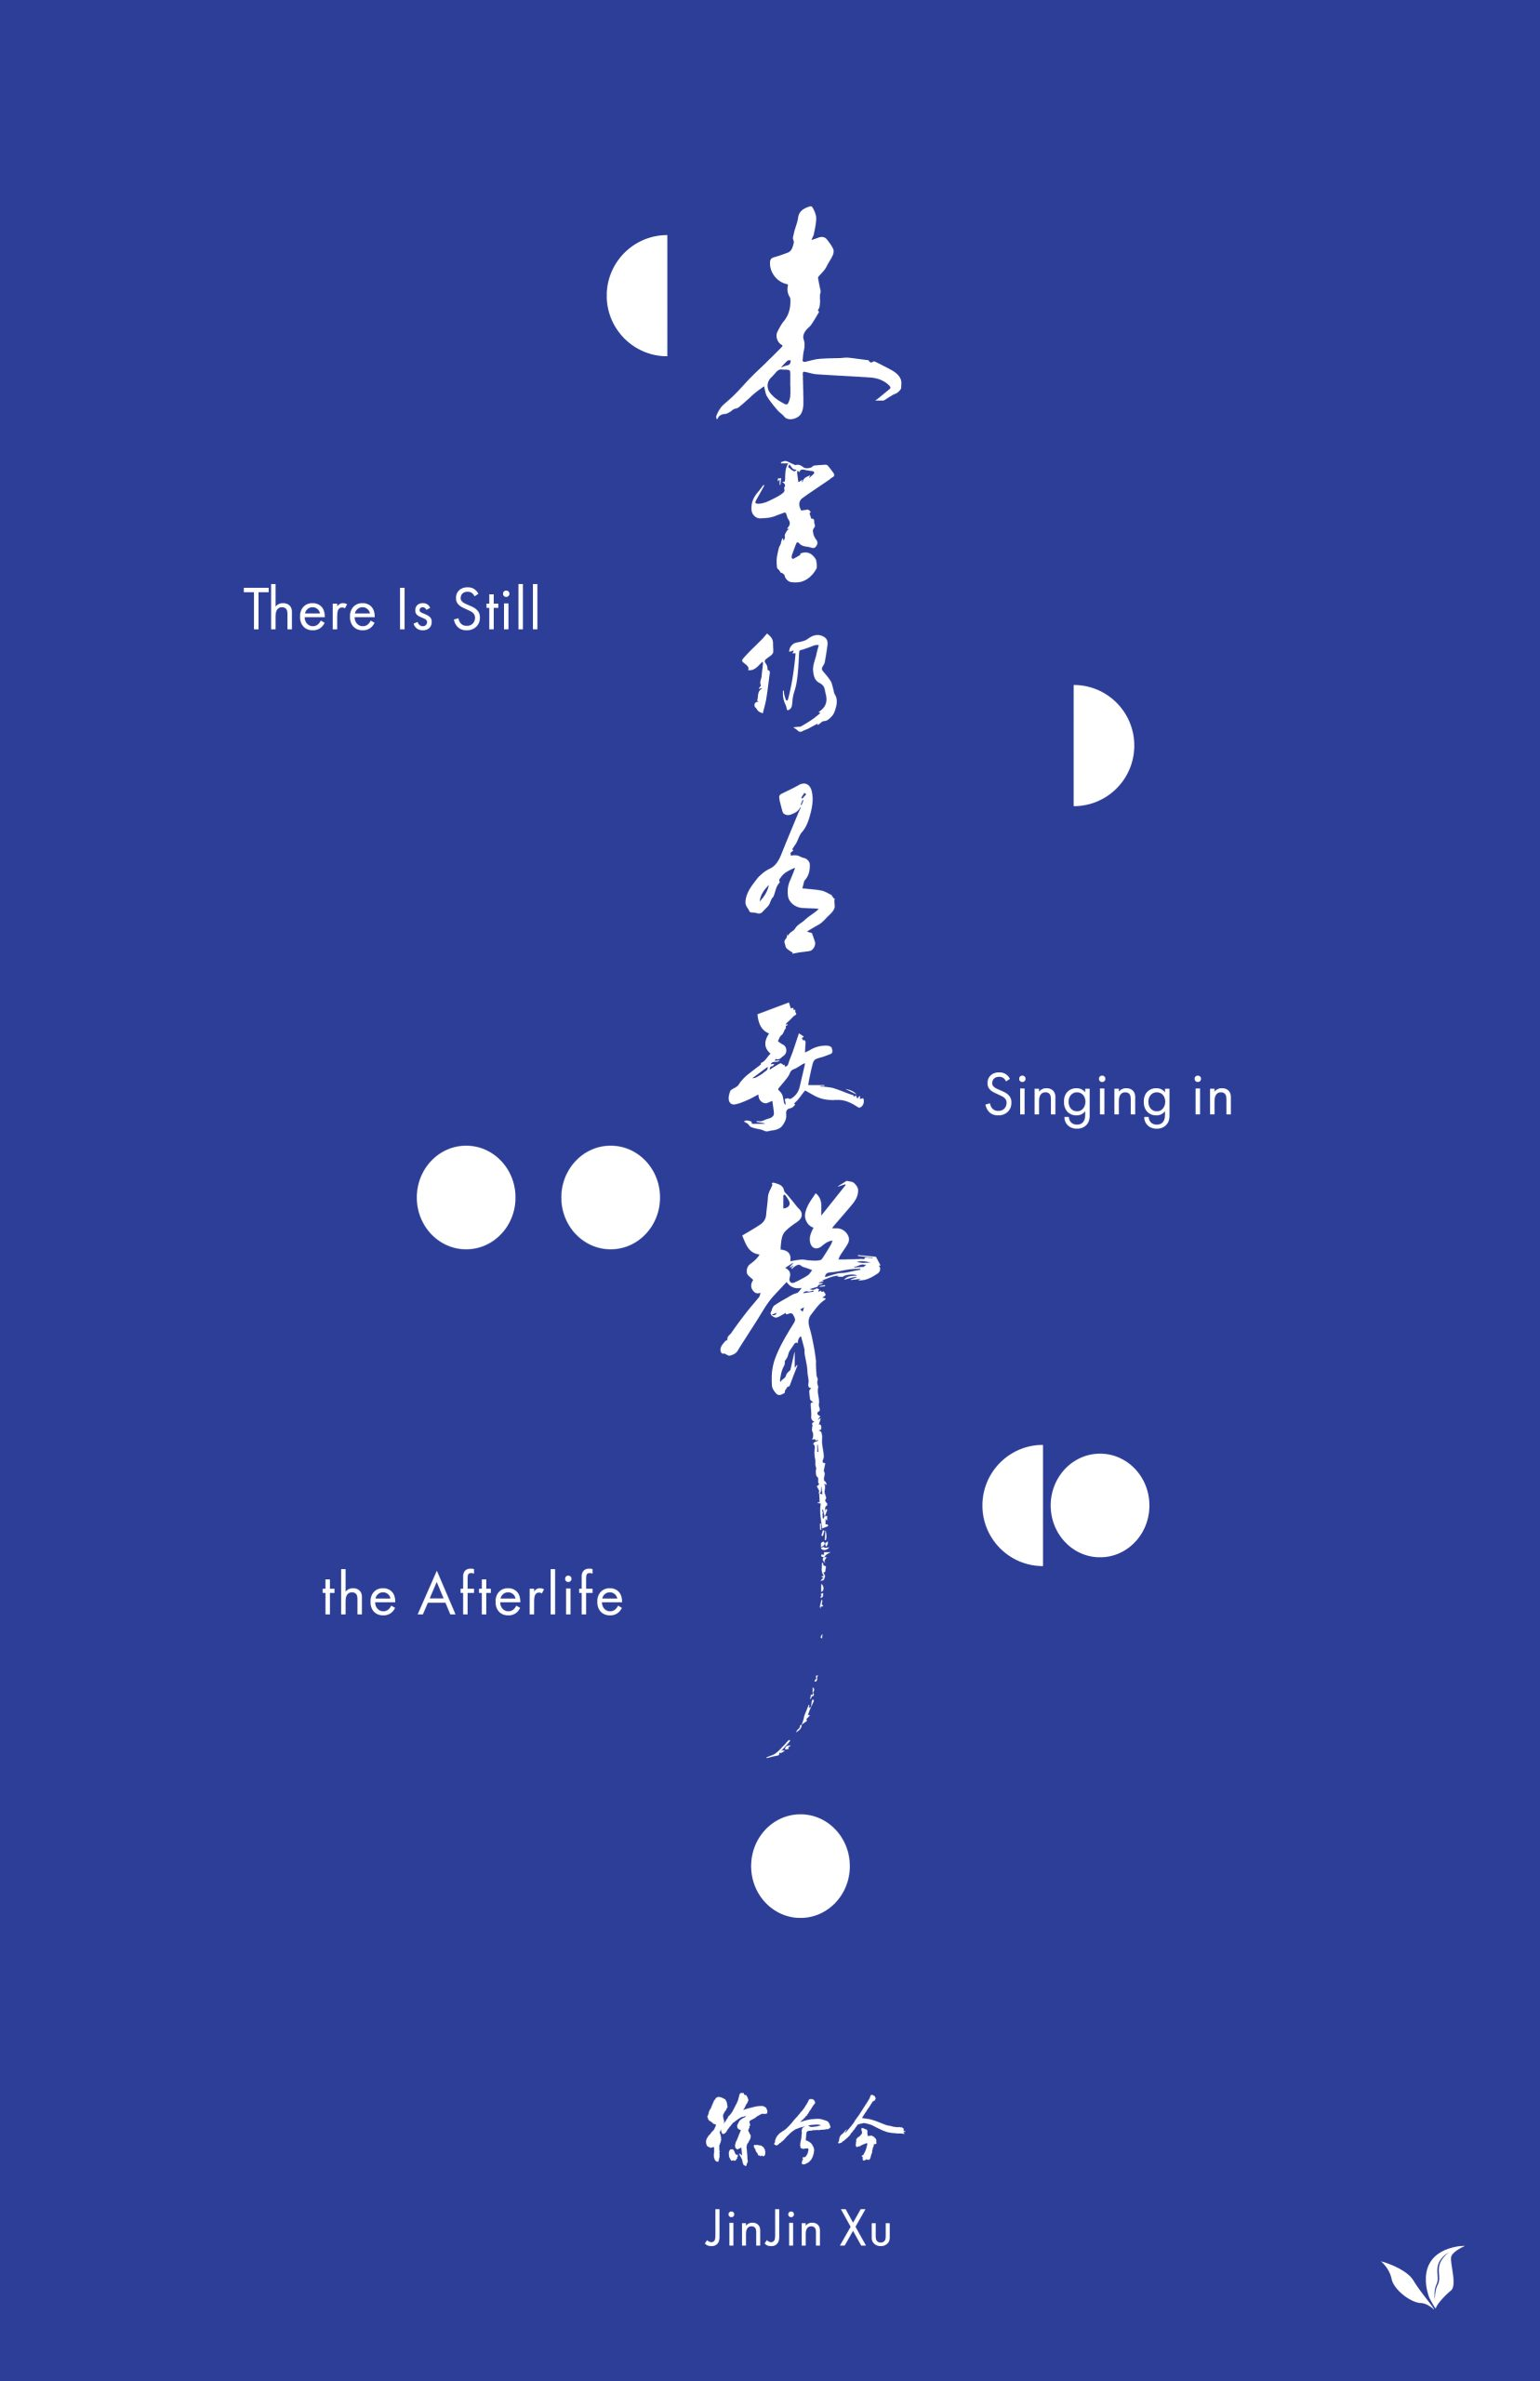 There Is Still Singing in the Afterlife by JinJin Xu